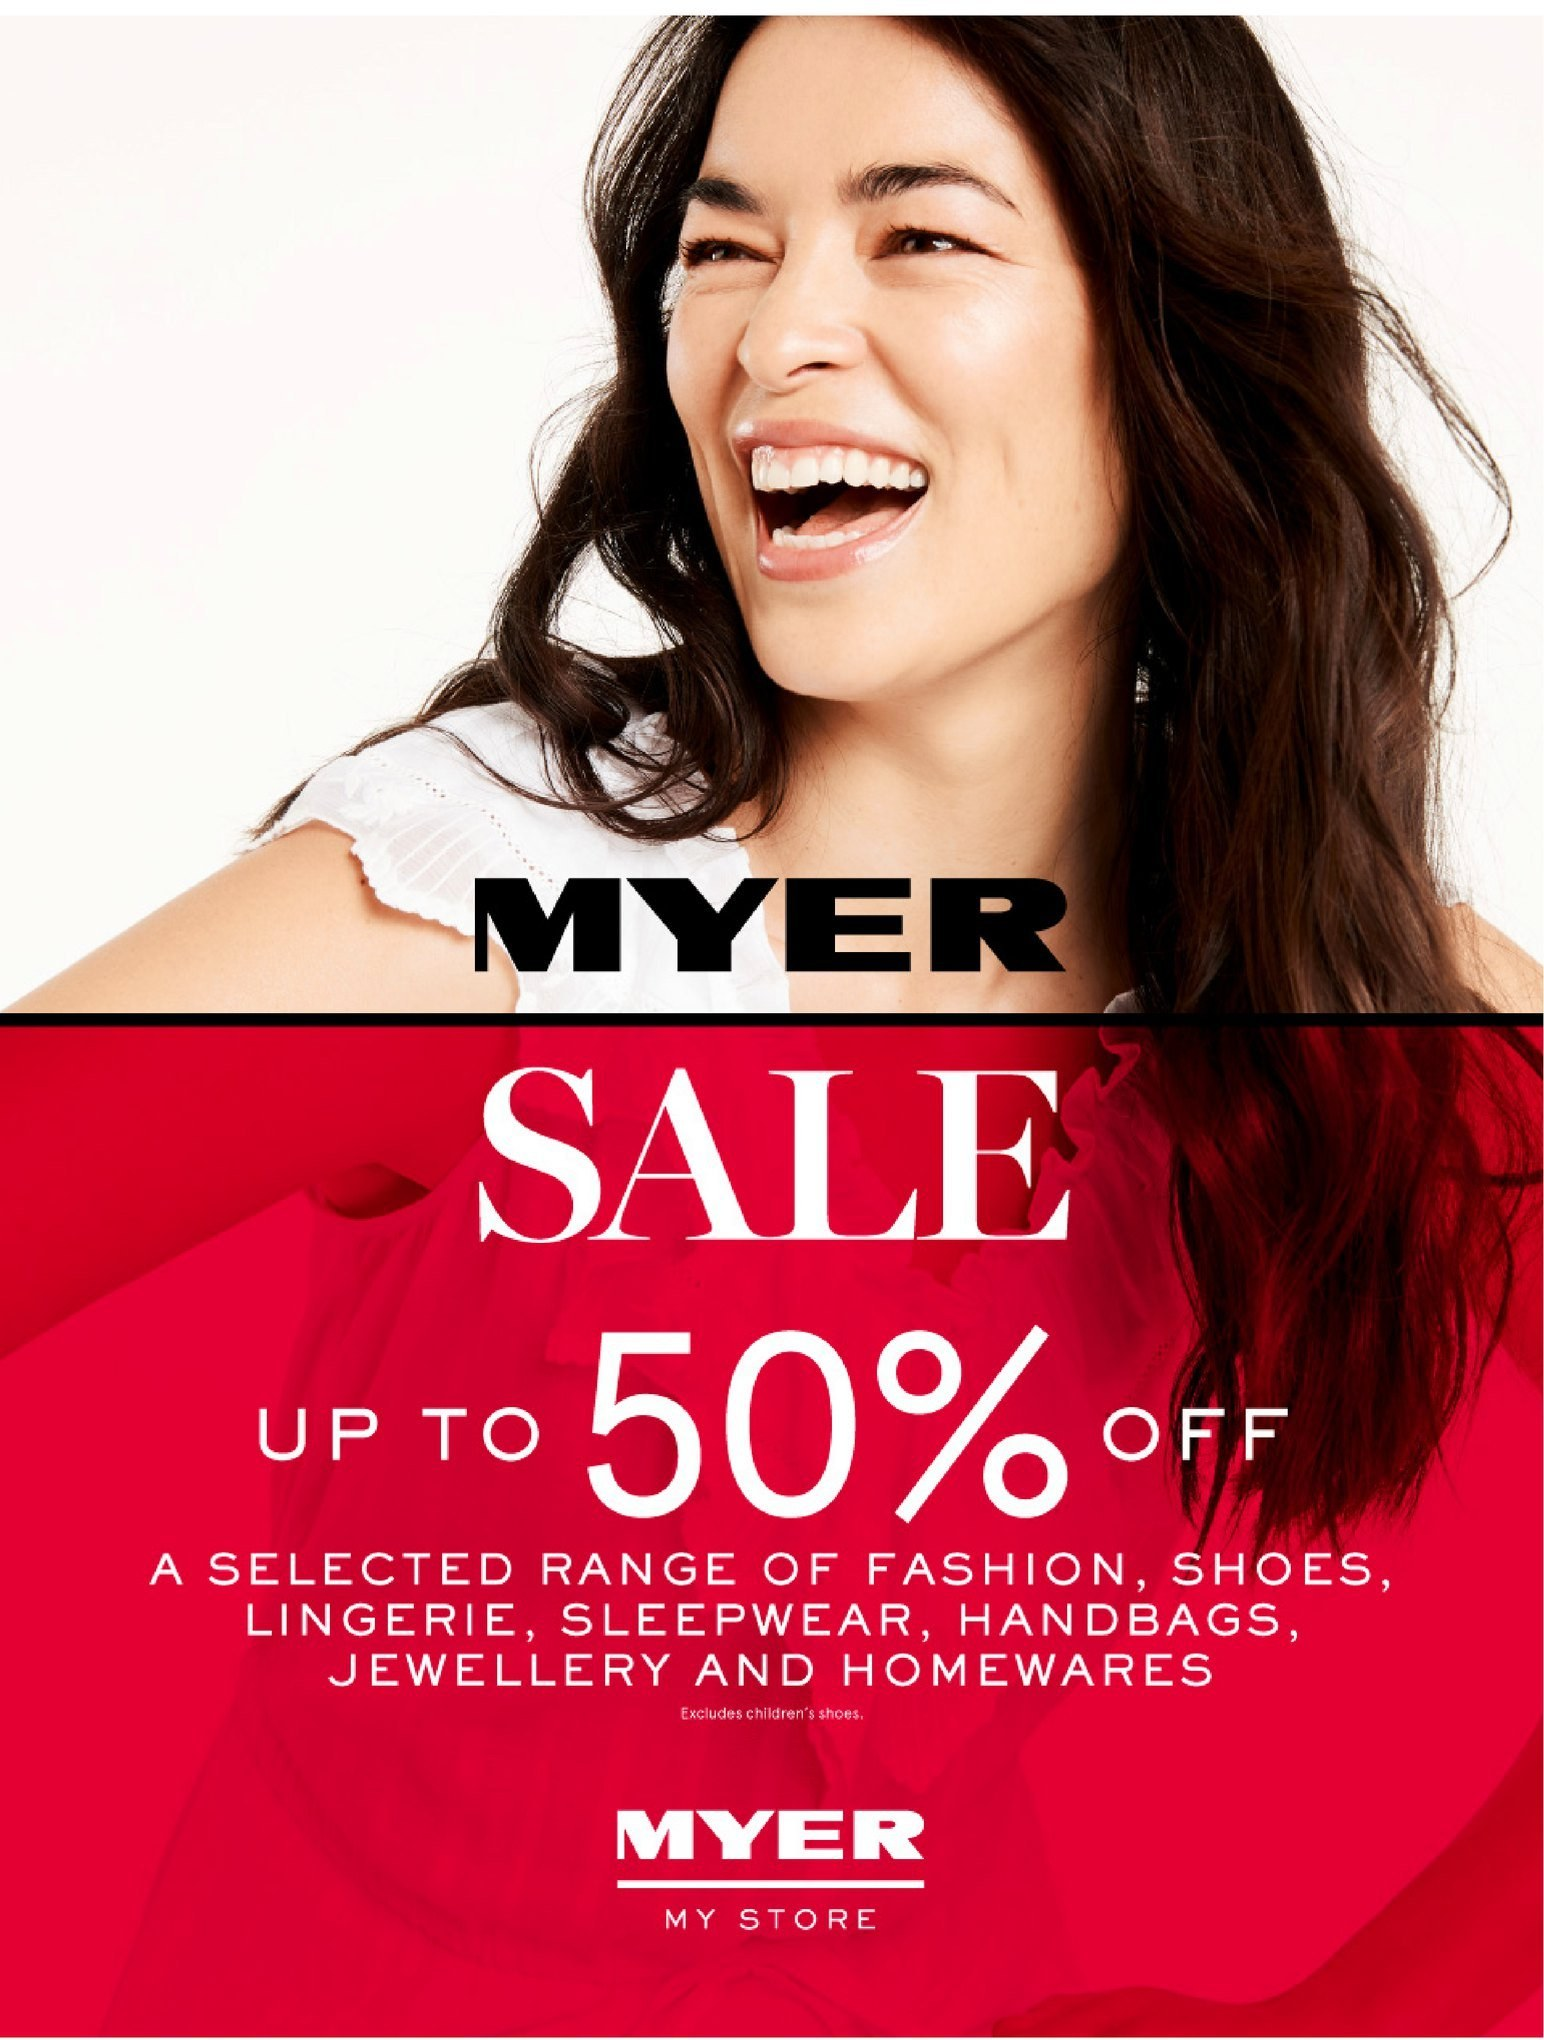 Myer catalogue  - 26.12.2018 - 28.1.2019. Page 1.